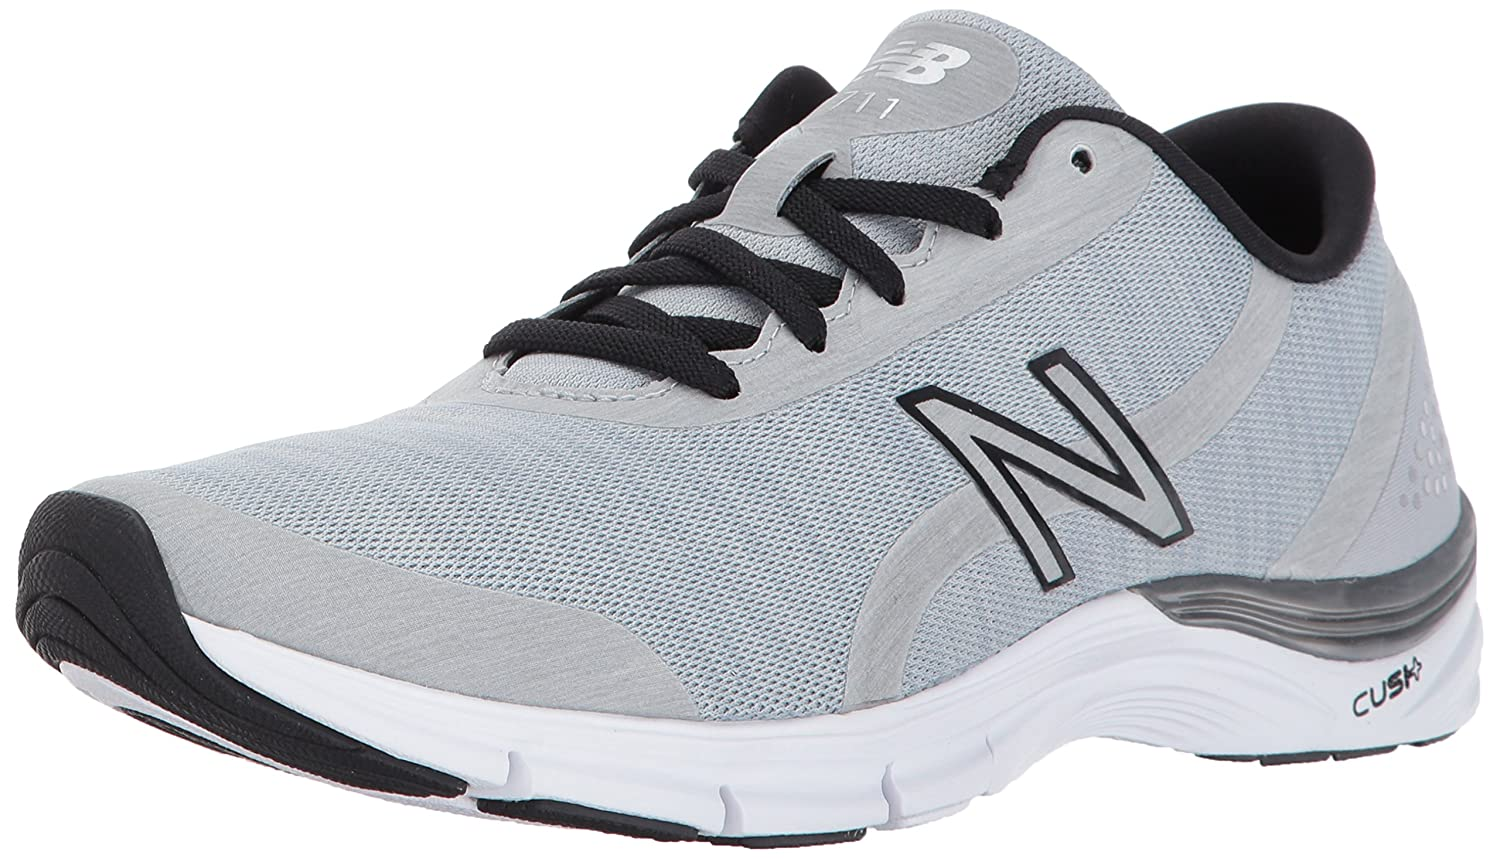 New Balance Women's 711v3 Cross Trainer Heather B01N1I0TE7 11 B(M) US|Steel/Black Heather Trainer 5031dc